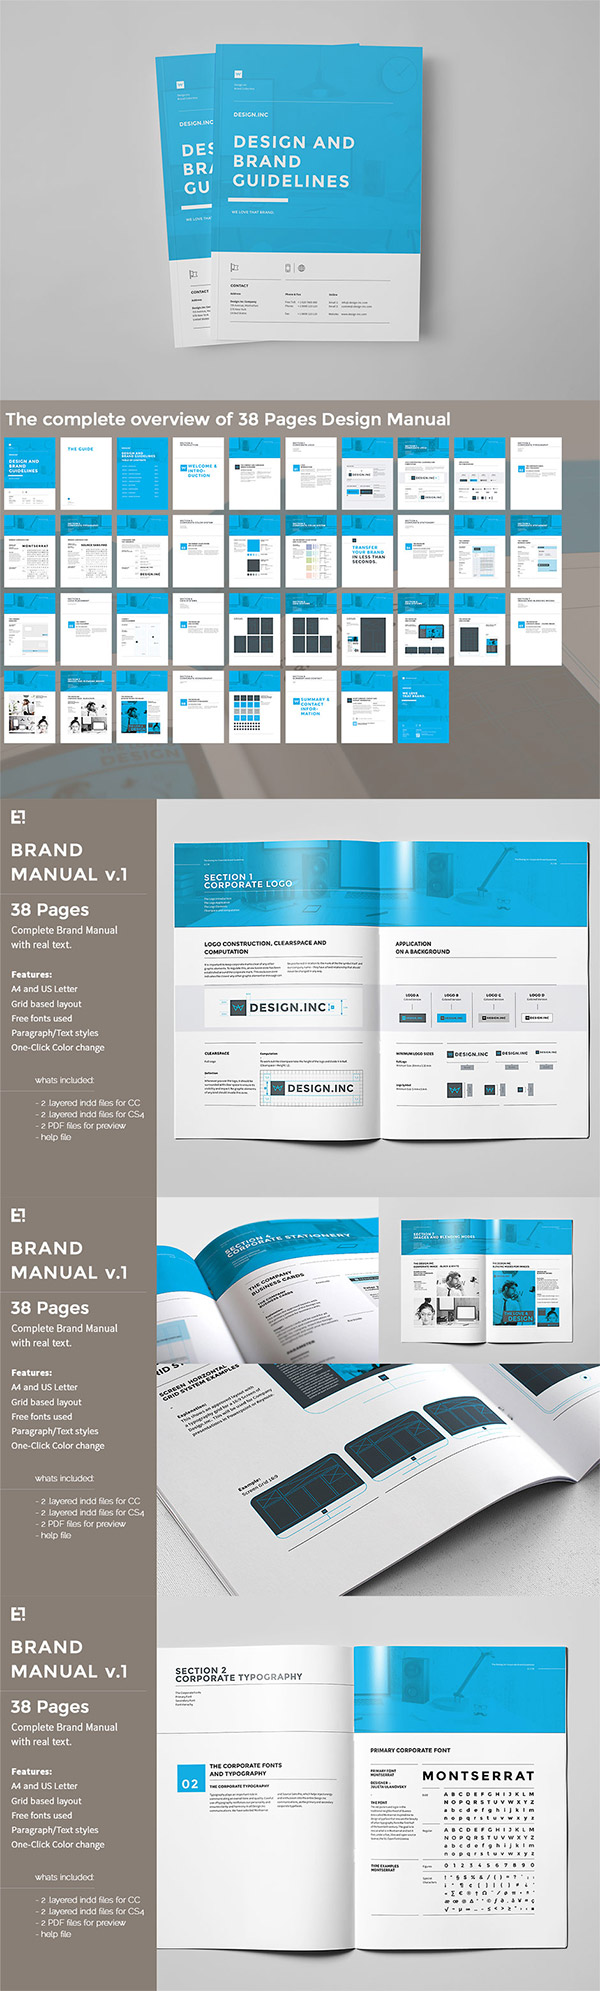 Brand Guidelines preview